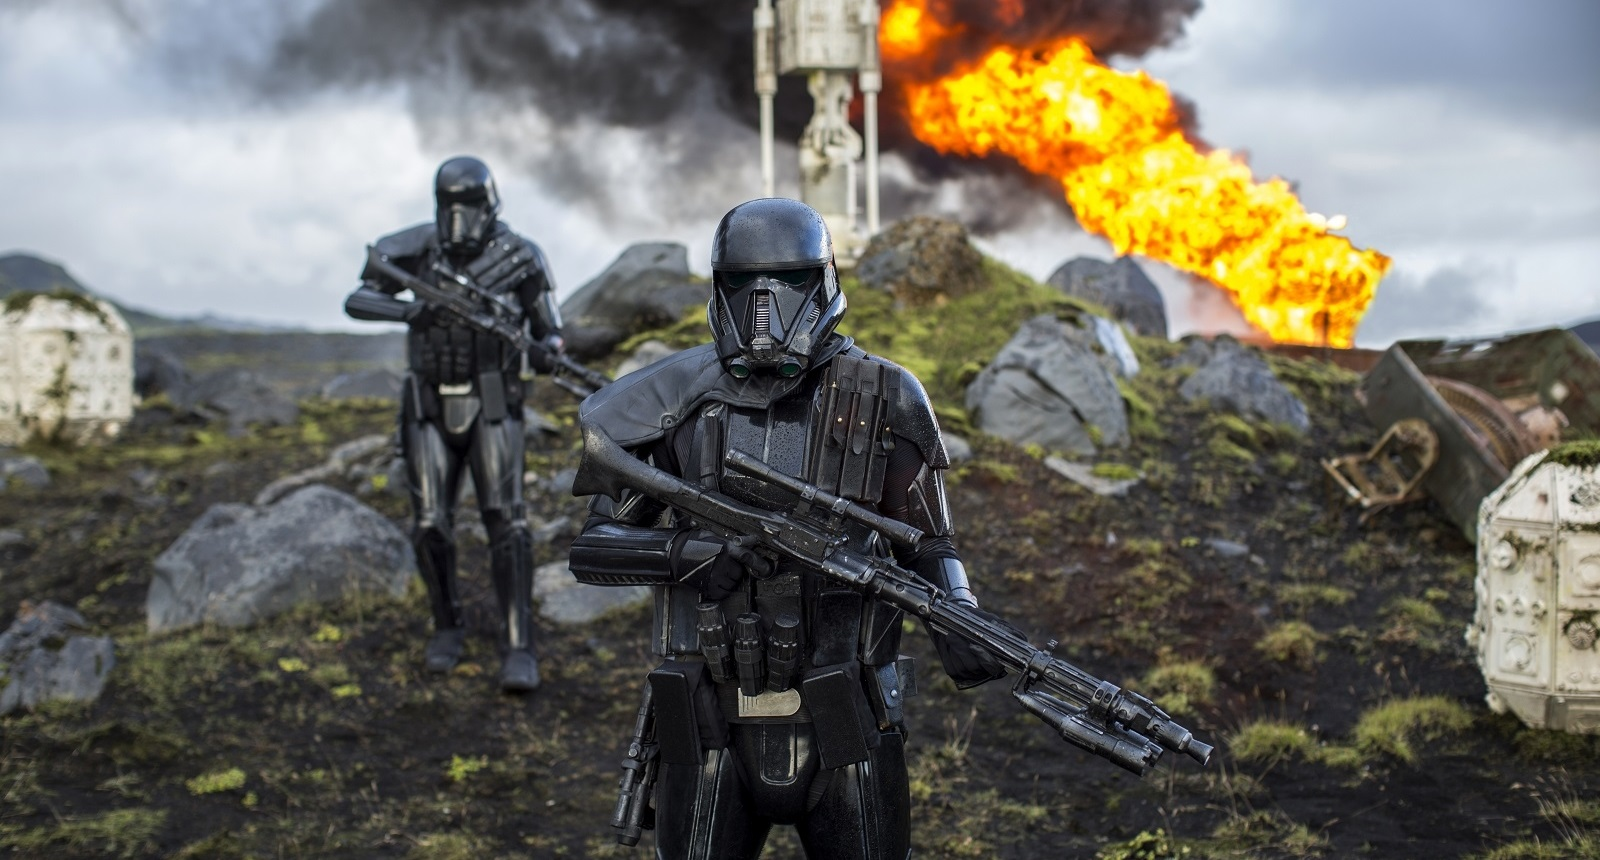 """With extended war sequences, parents will have to decide if """"Rogue One: A Star Wars Story"""" is for their children. (Courtesy of Lucasfilm)"""